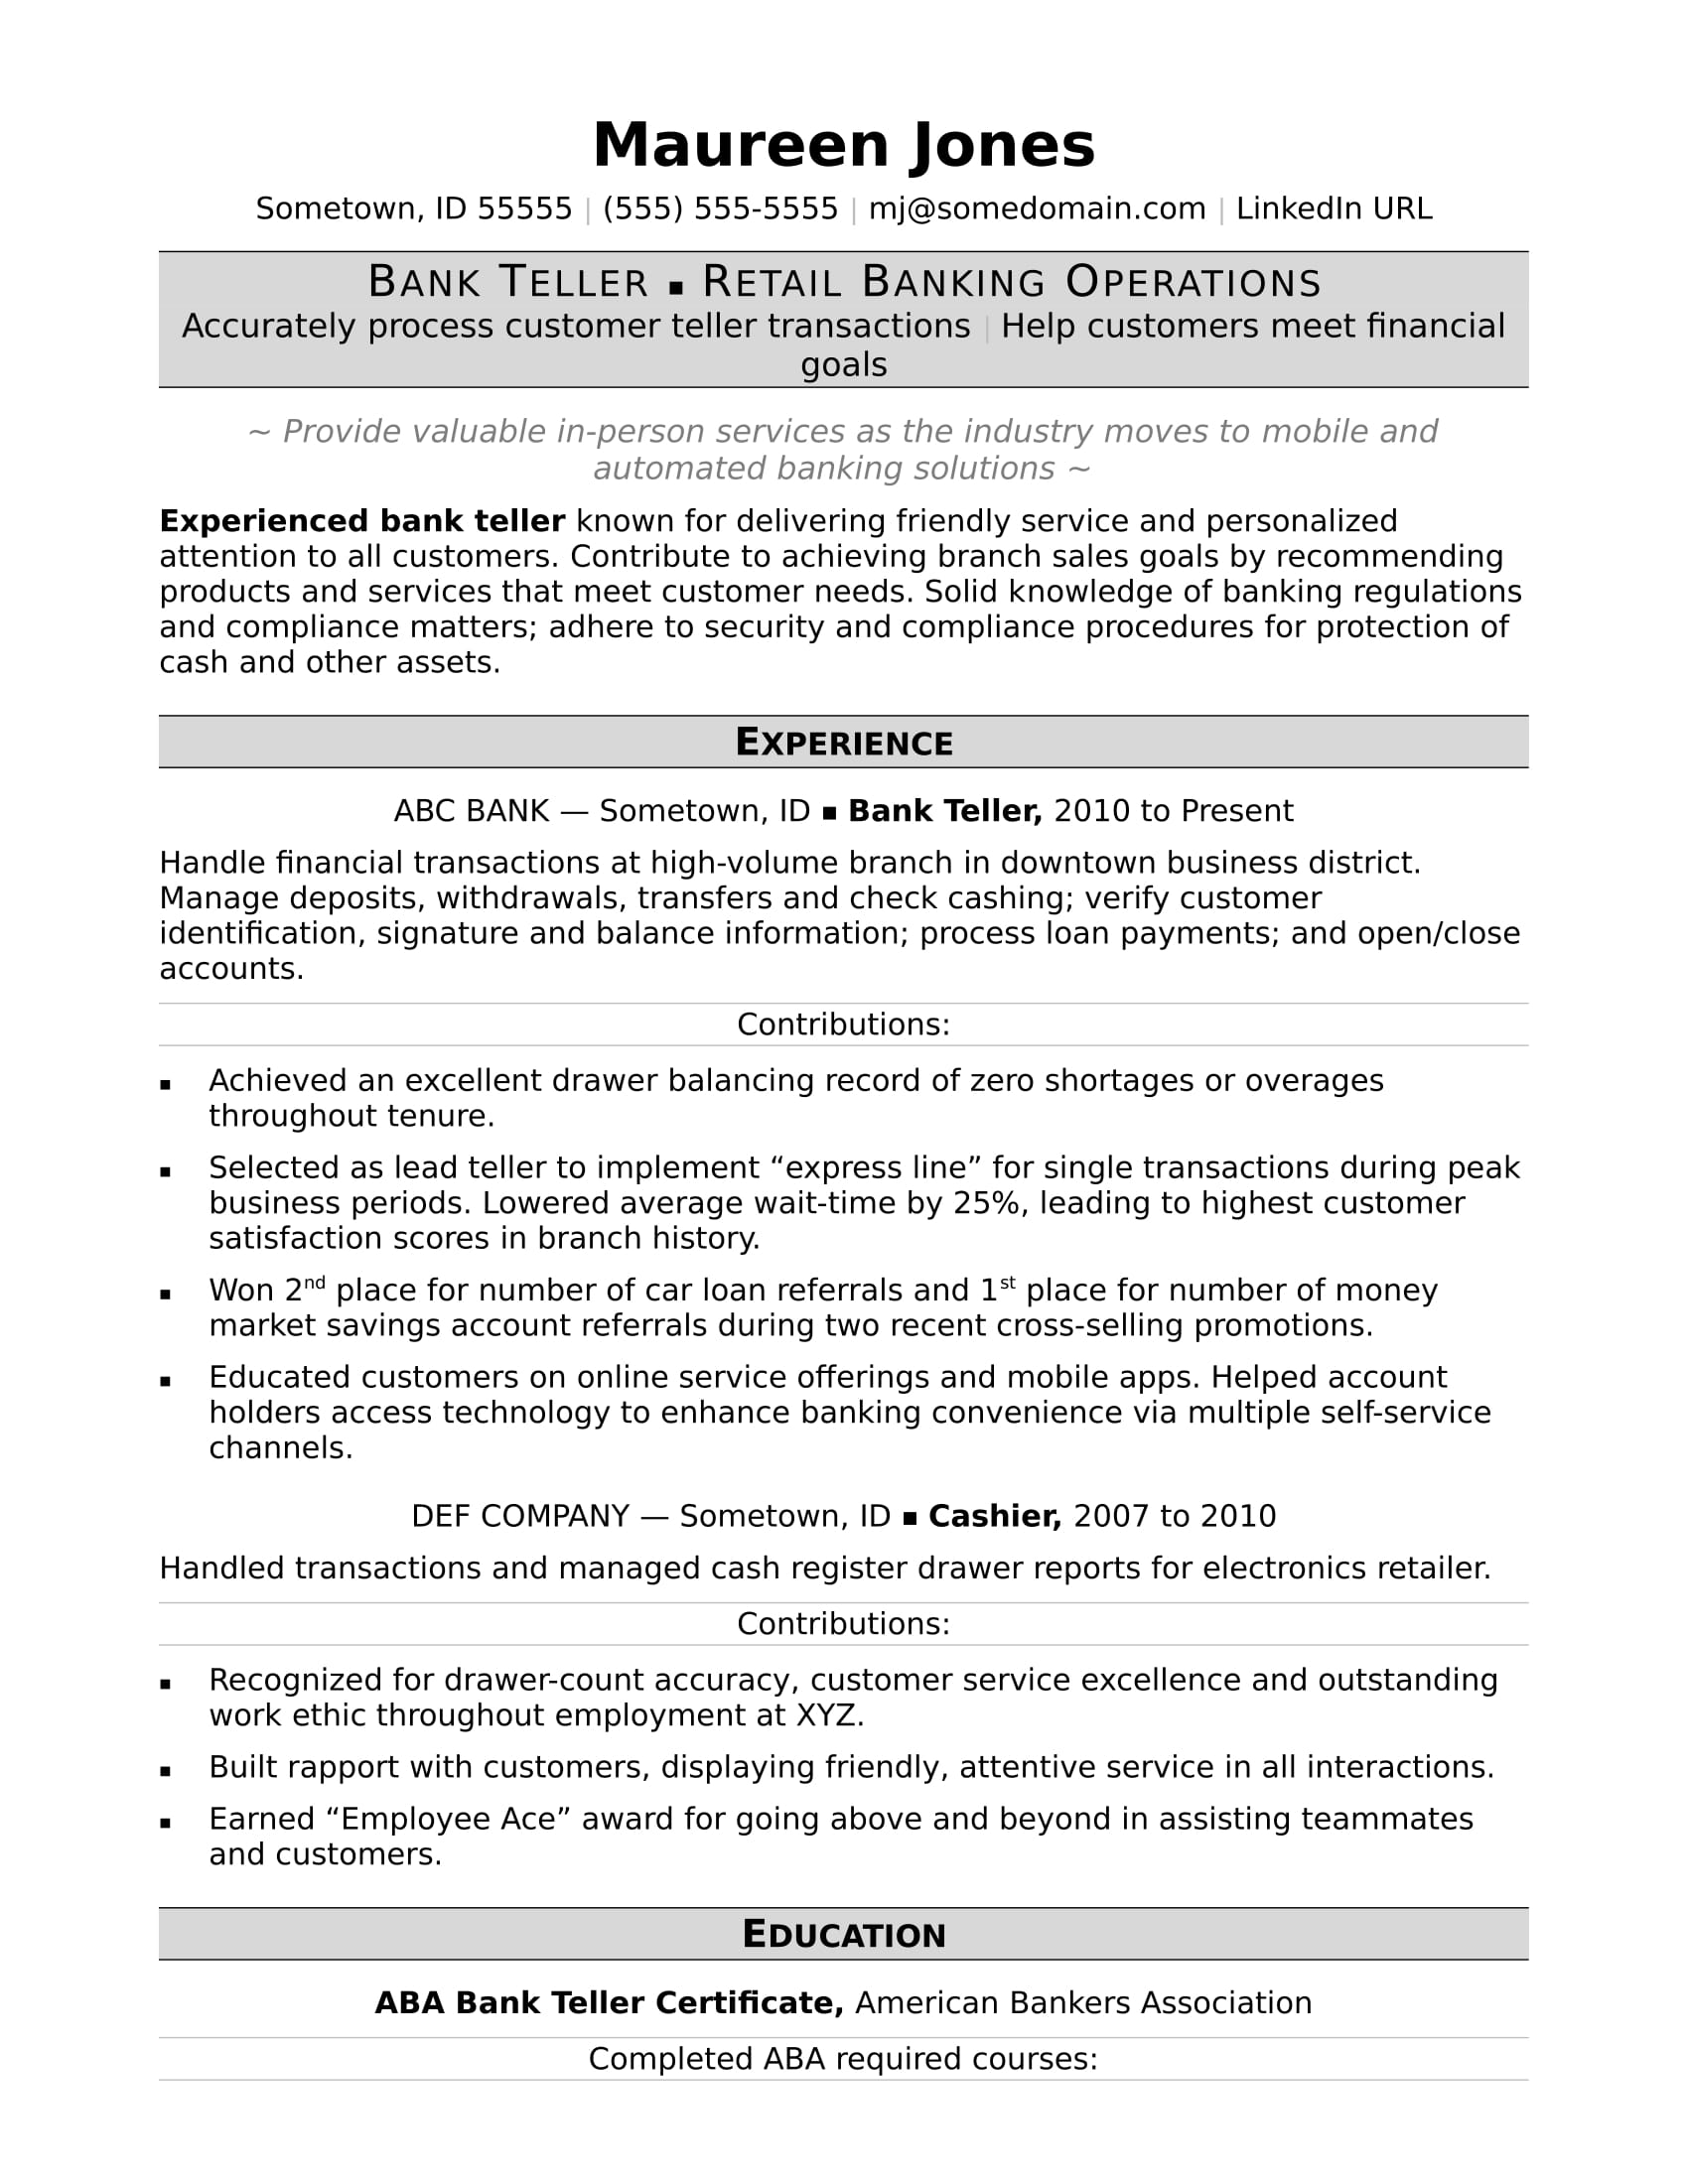 Bank Teller Resume Sample  Bank Teller Duties For Resume